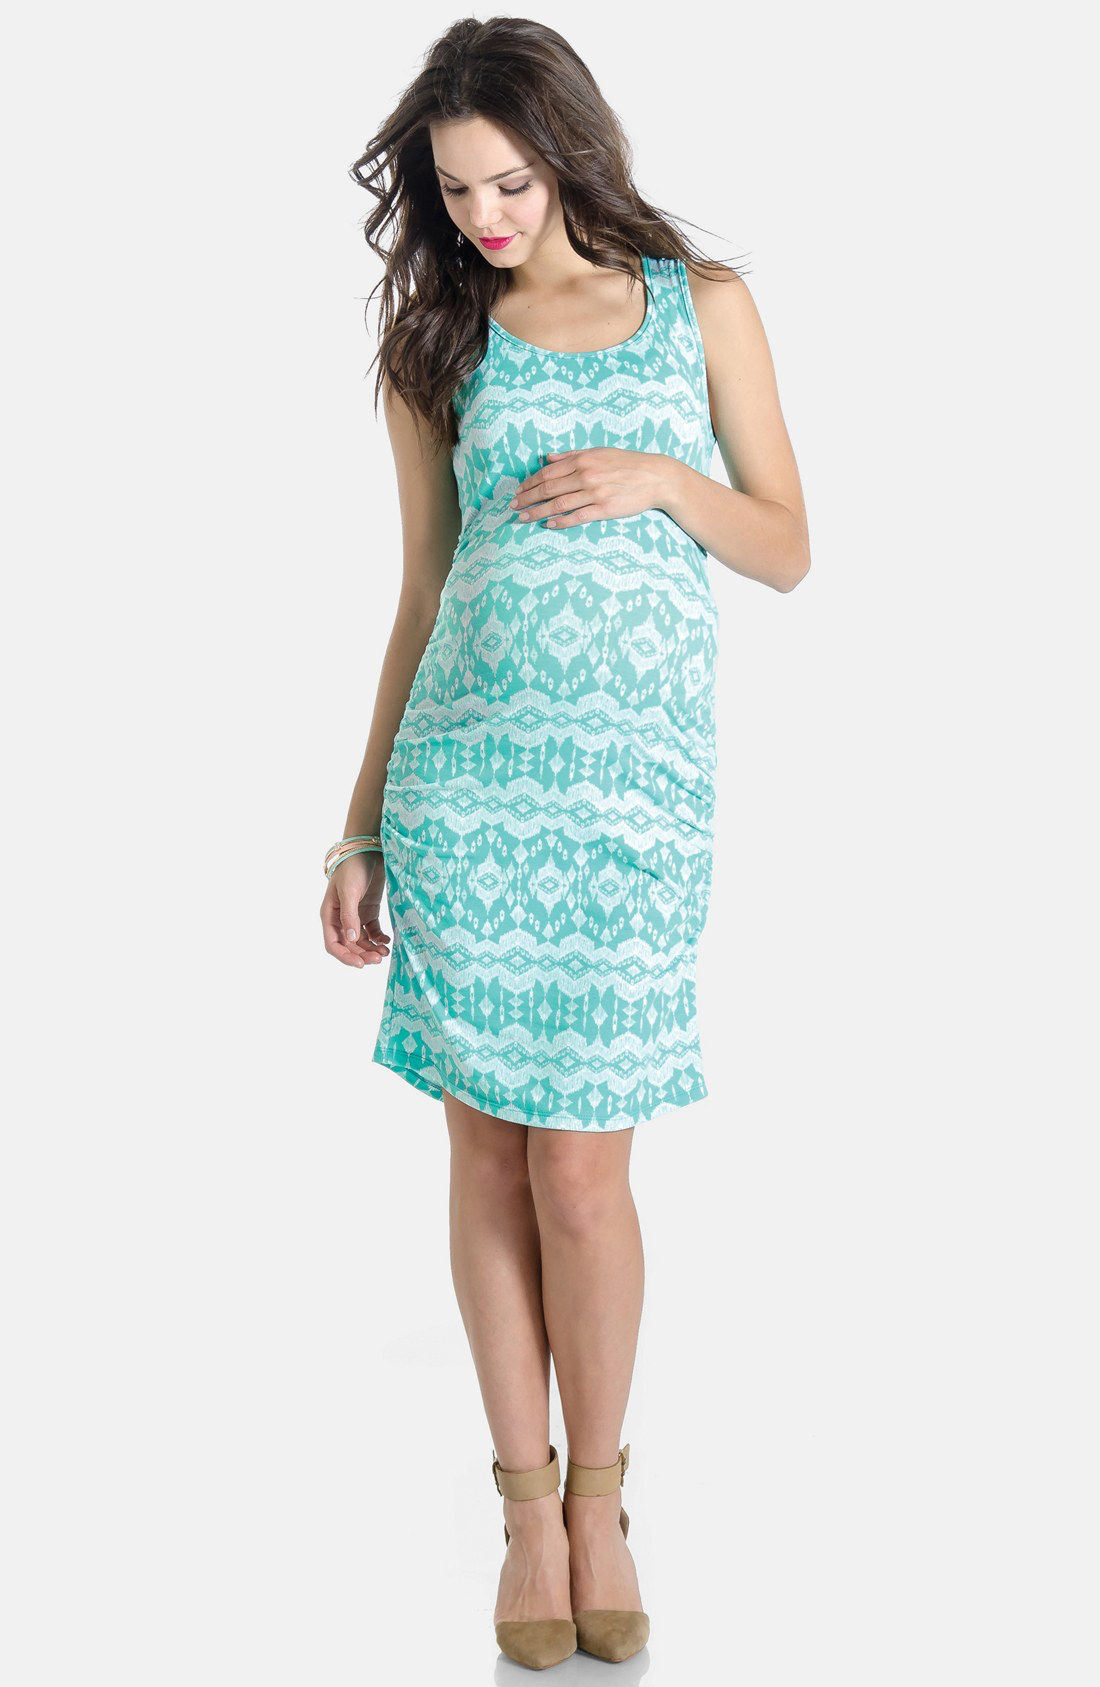 Summer Maternity Dresses - Project Nursery